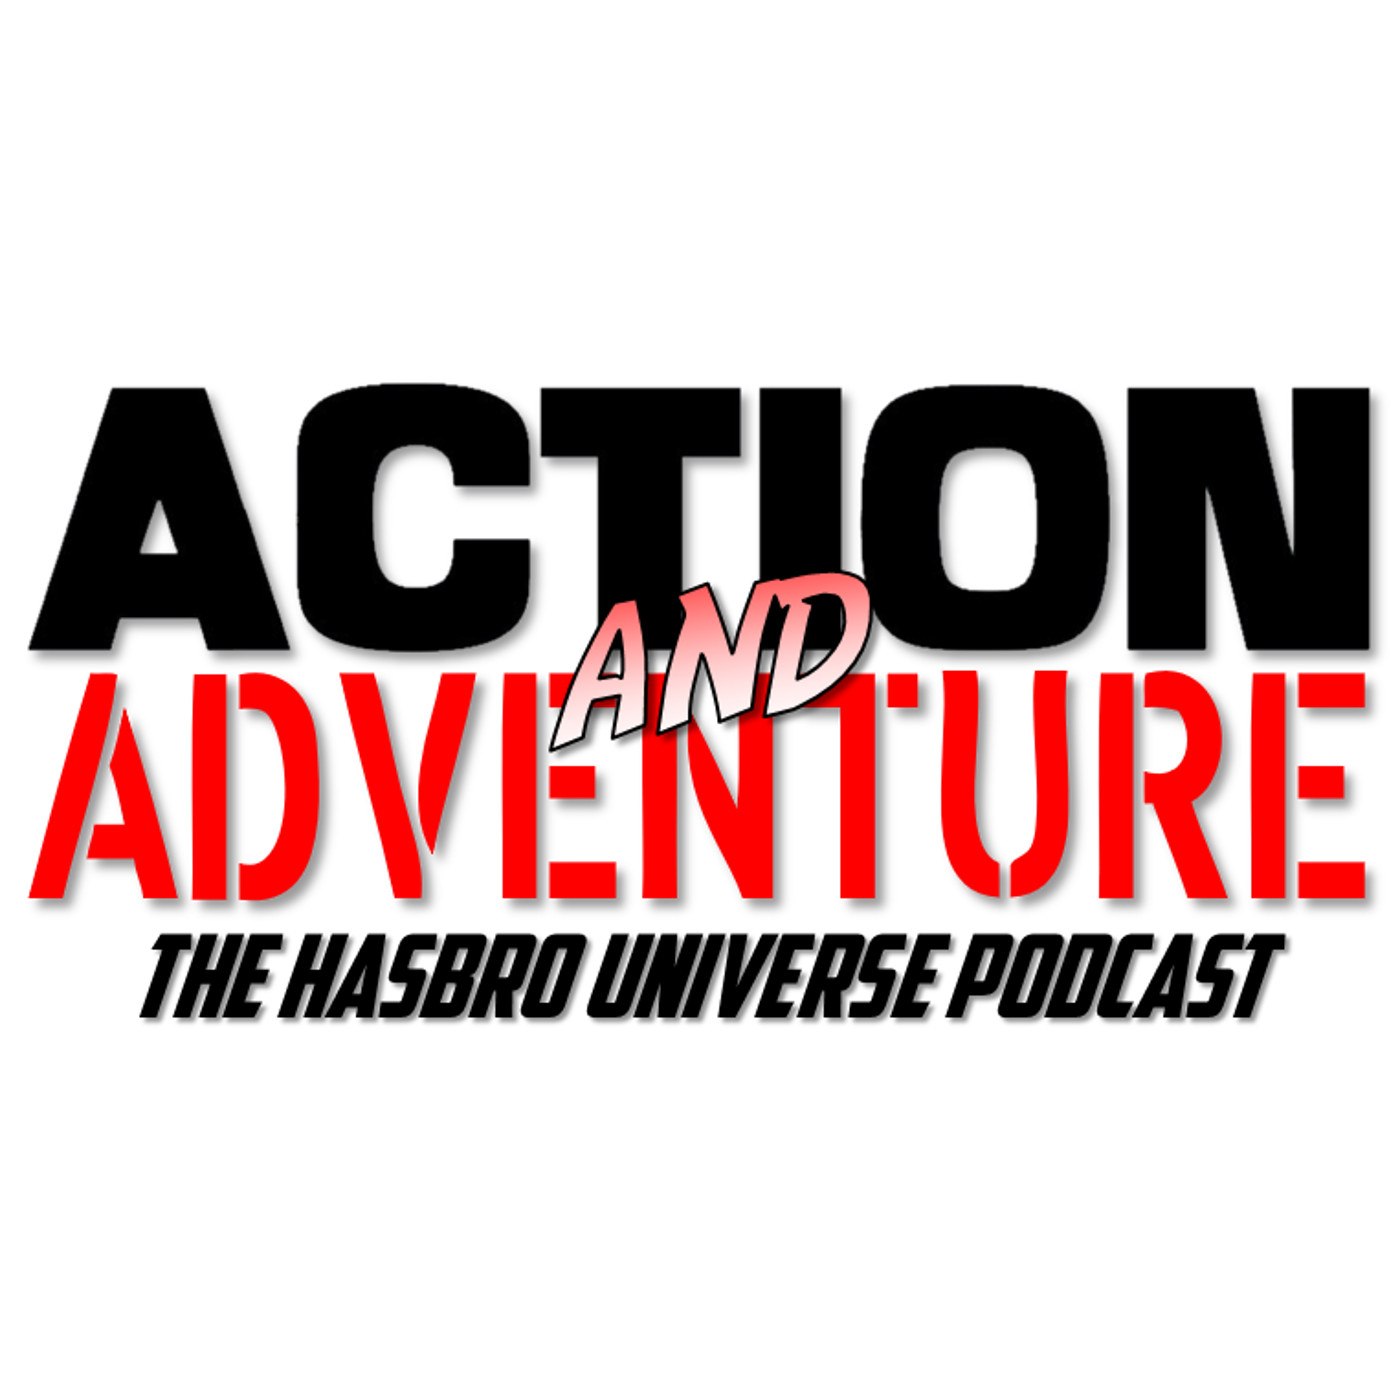 Action and Adventure: The Hasbro Universe Podcast show art